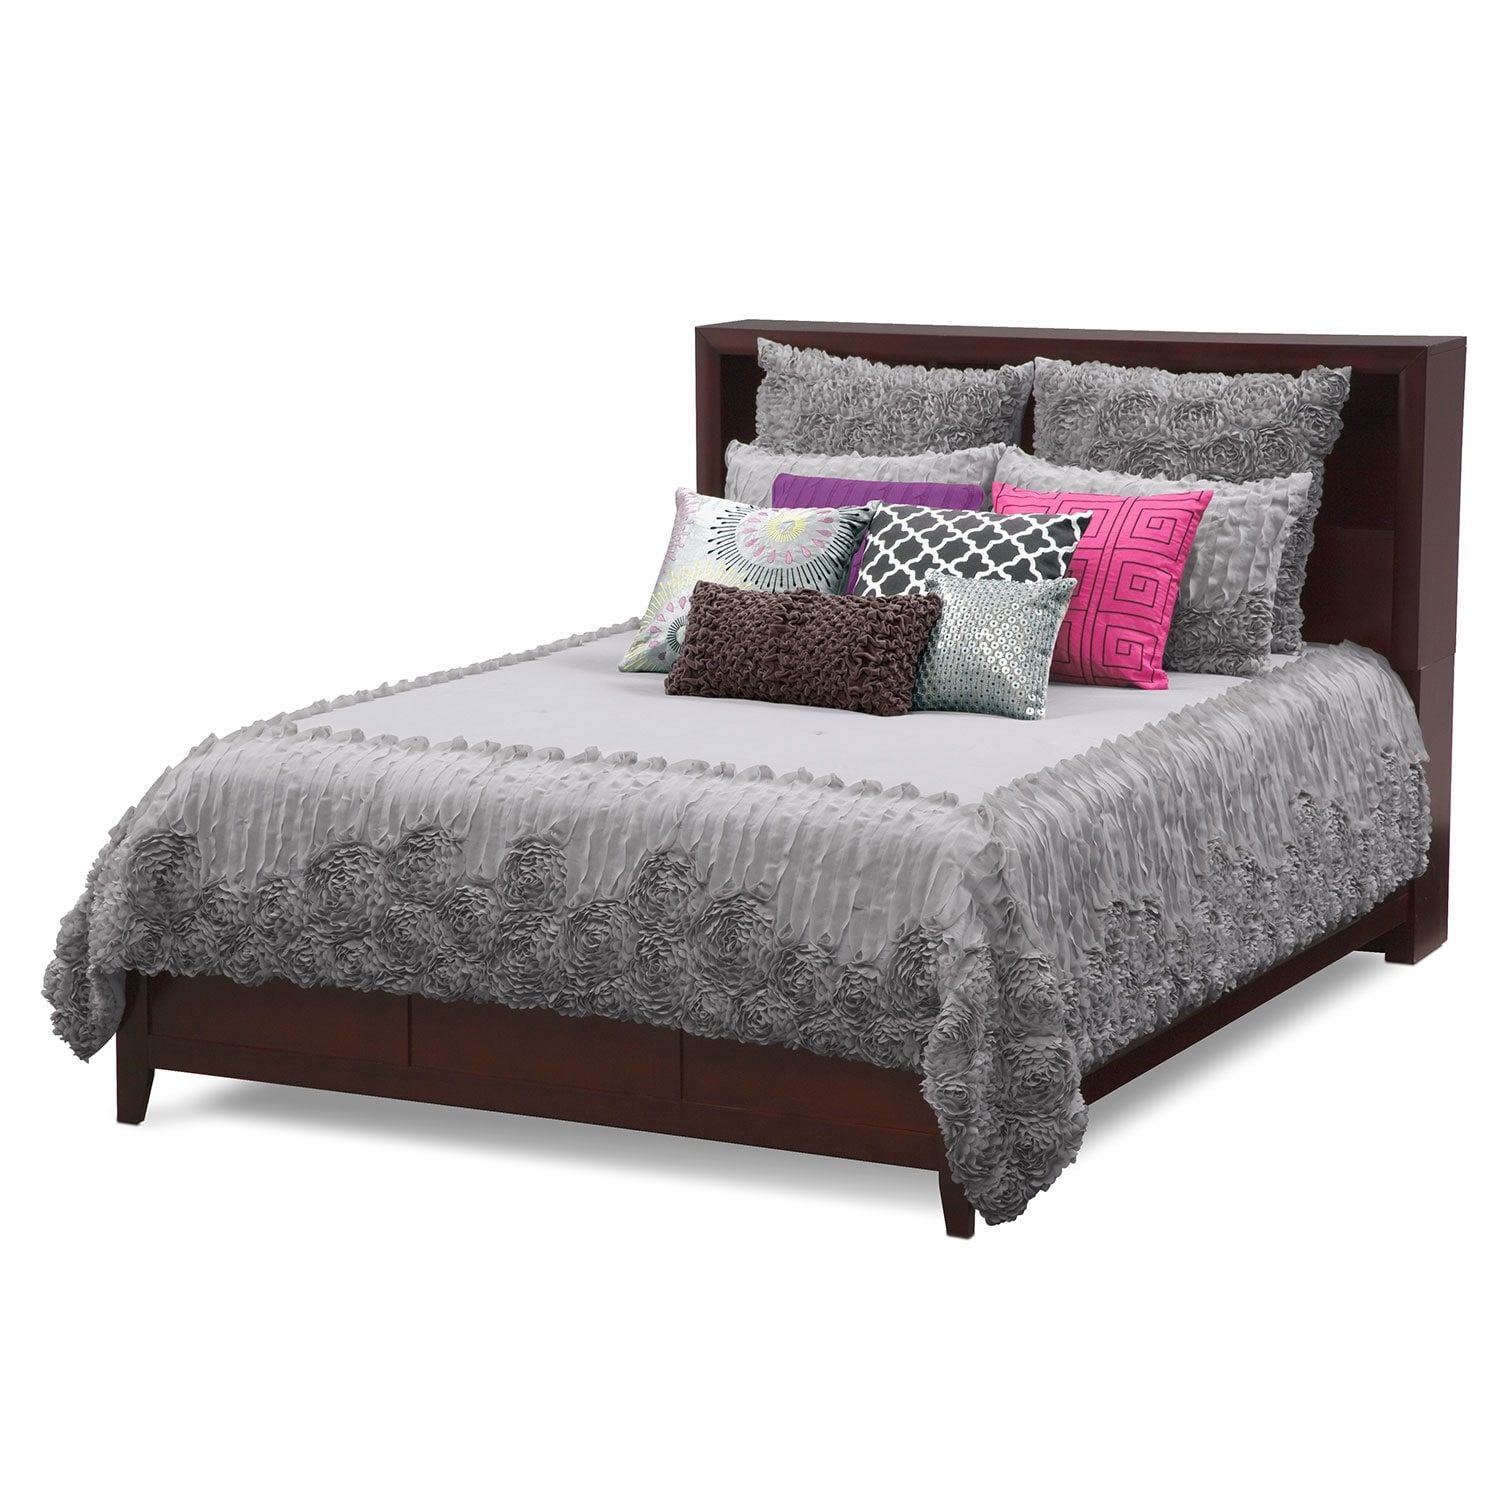 Sweet Georgia II Queen Bedding Set